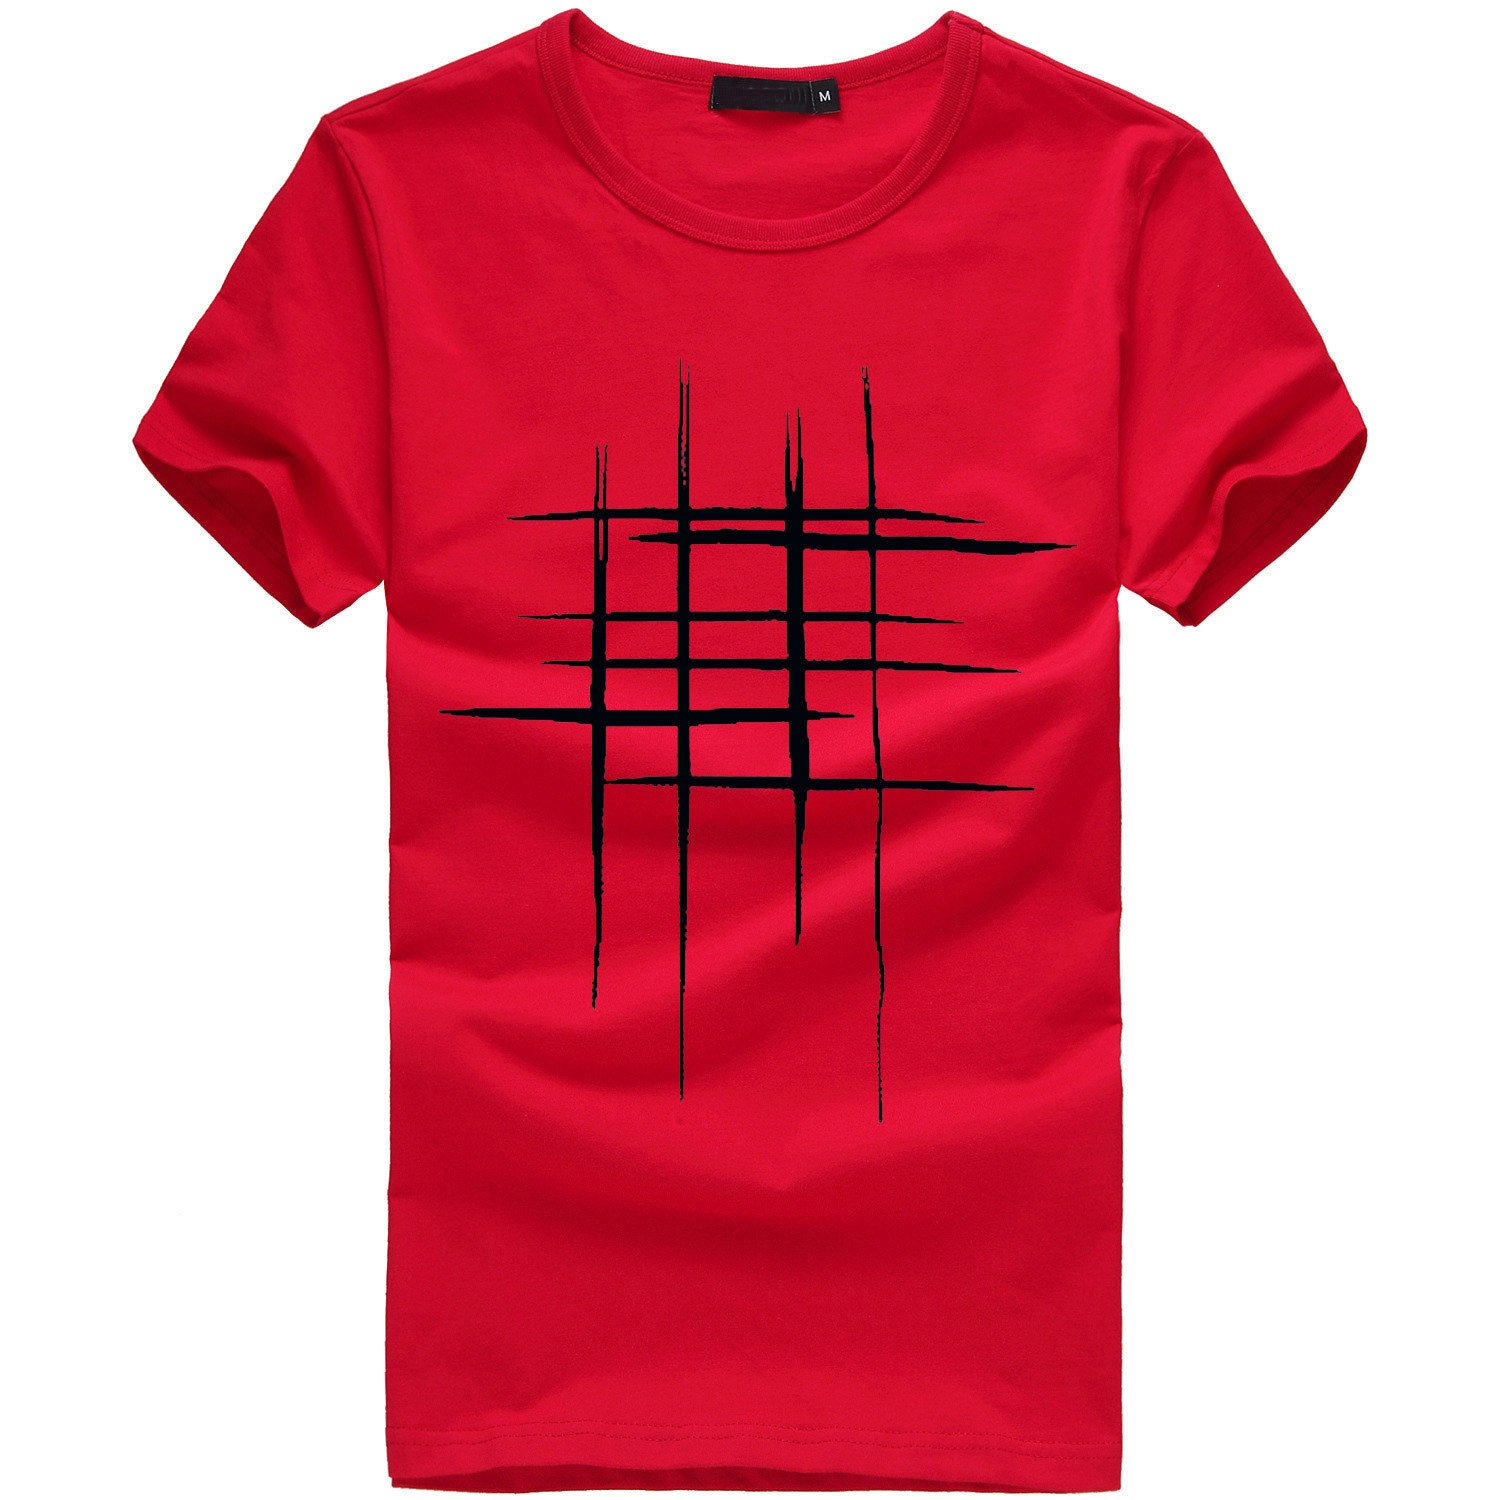 Sunmoot T Shirt for Men Boys Casual Printed Slim Fit Short Sleeve Top Spring Summer Blouse Red